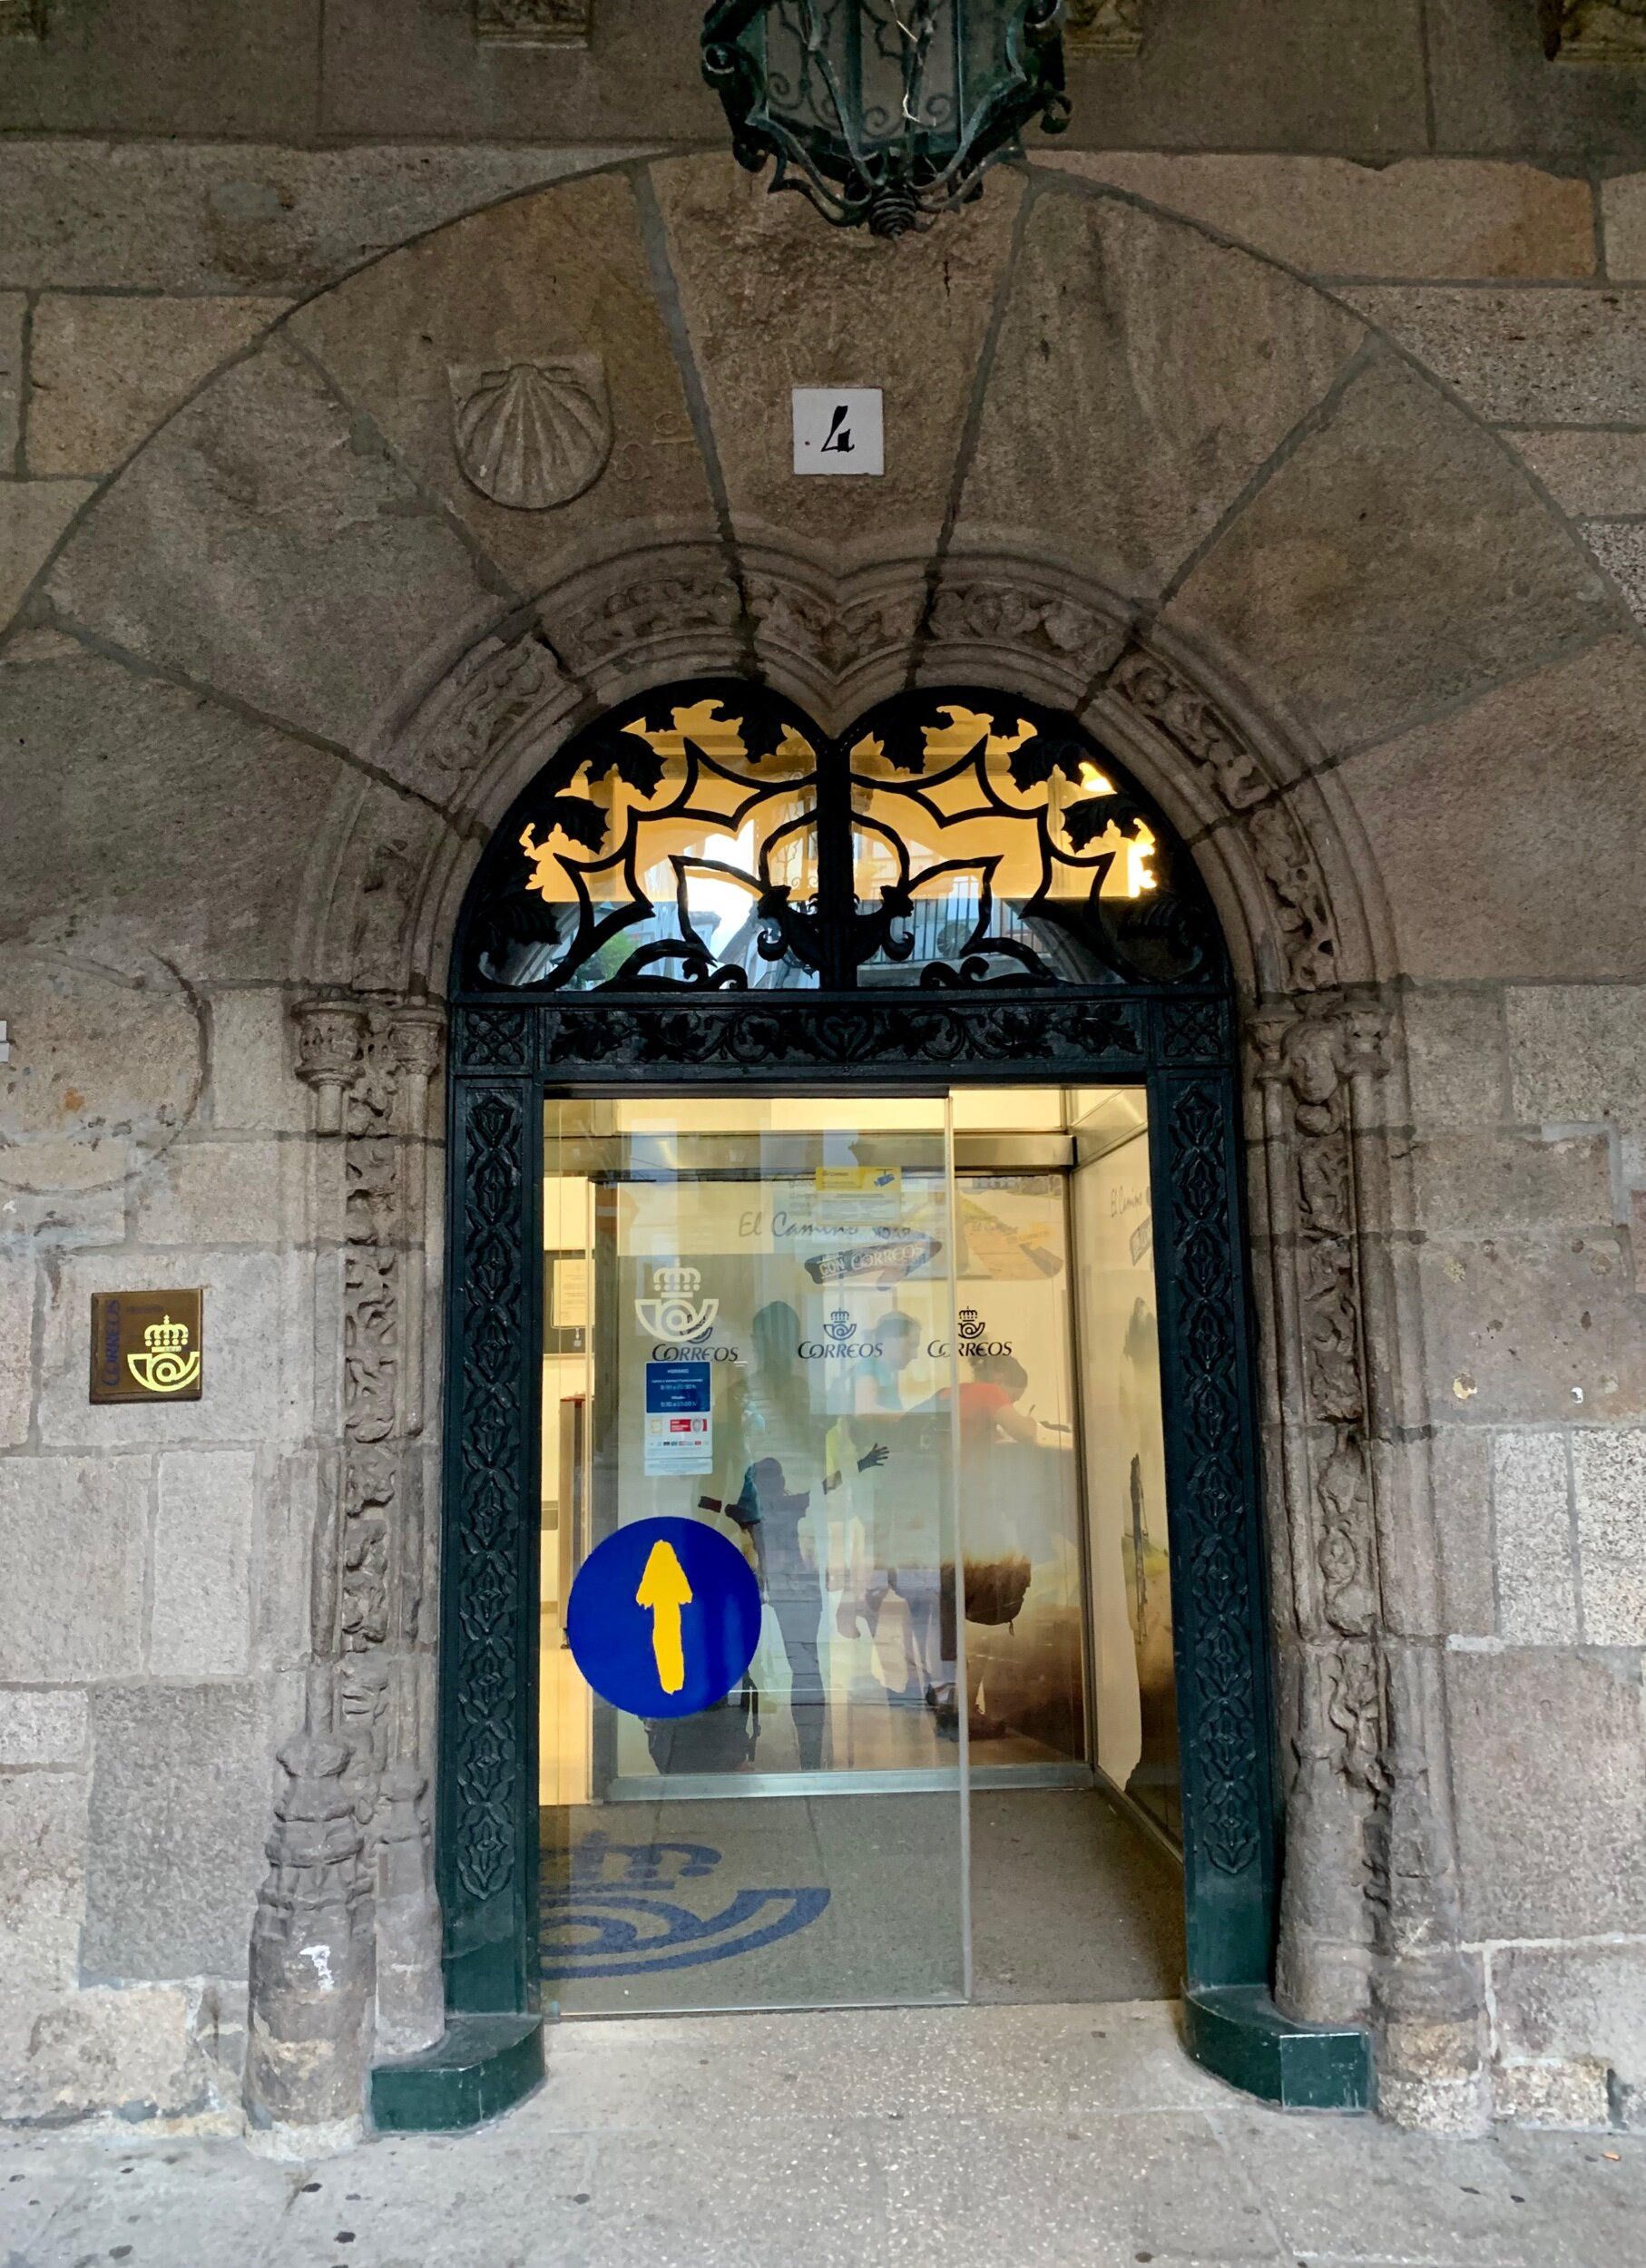 The main post office in Santiago where I leave my pack and hope for the best….